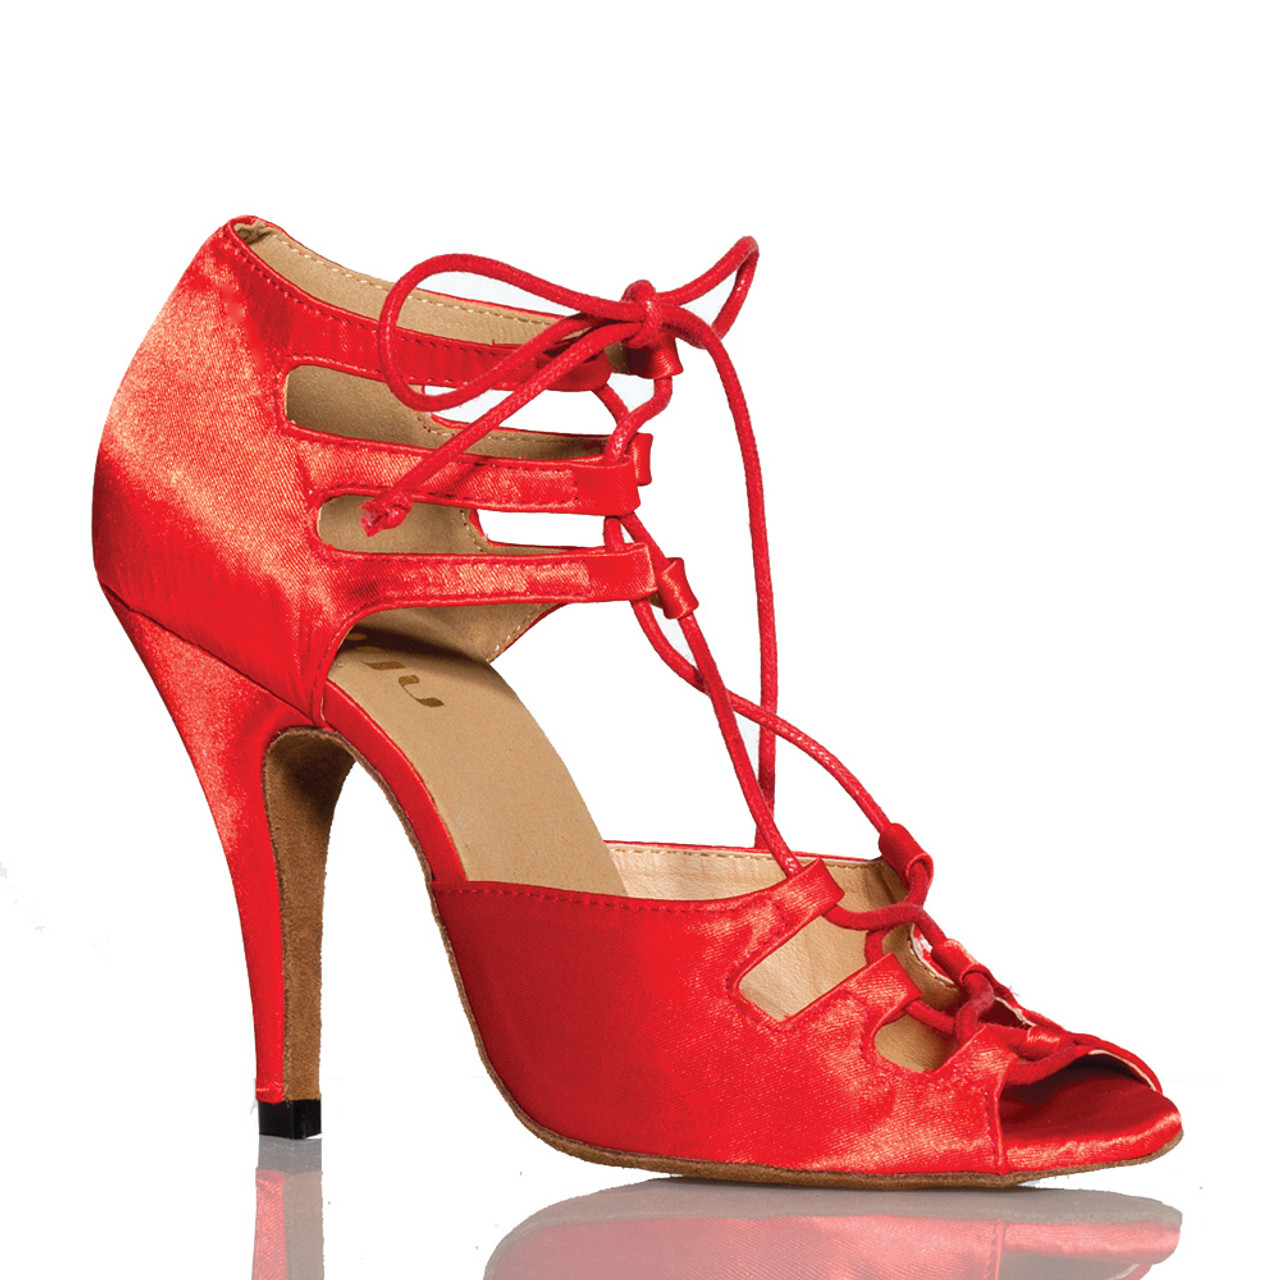 Alemana Red Satin Open Toe Lace Up Stiletto Dance Shoe 4 Inch Heels